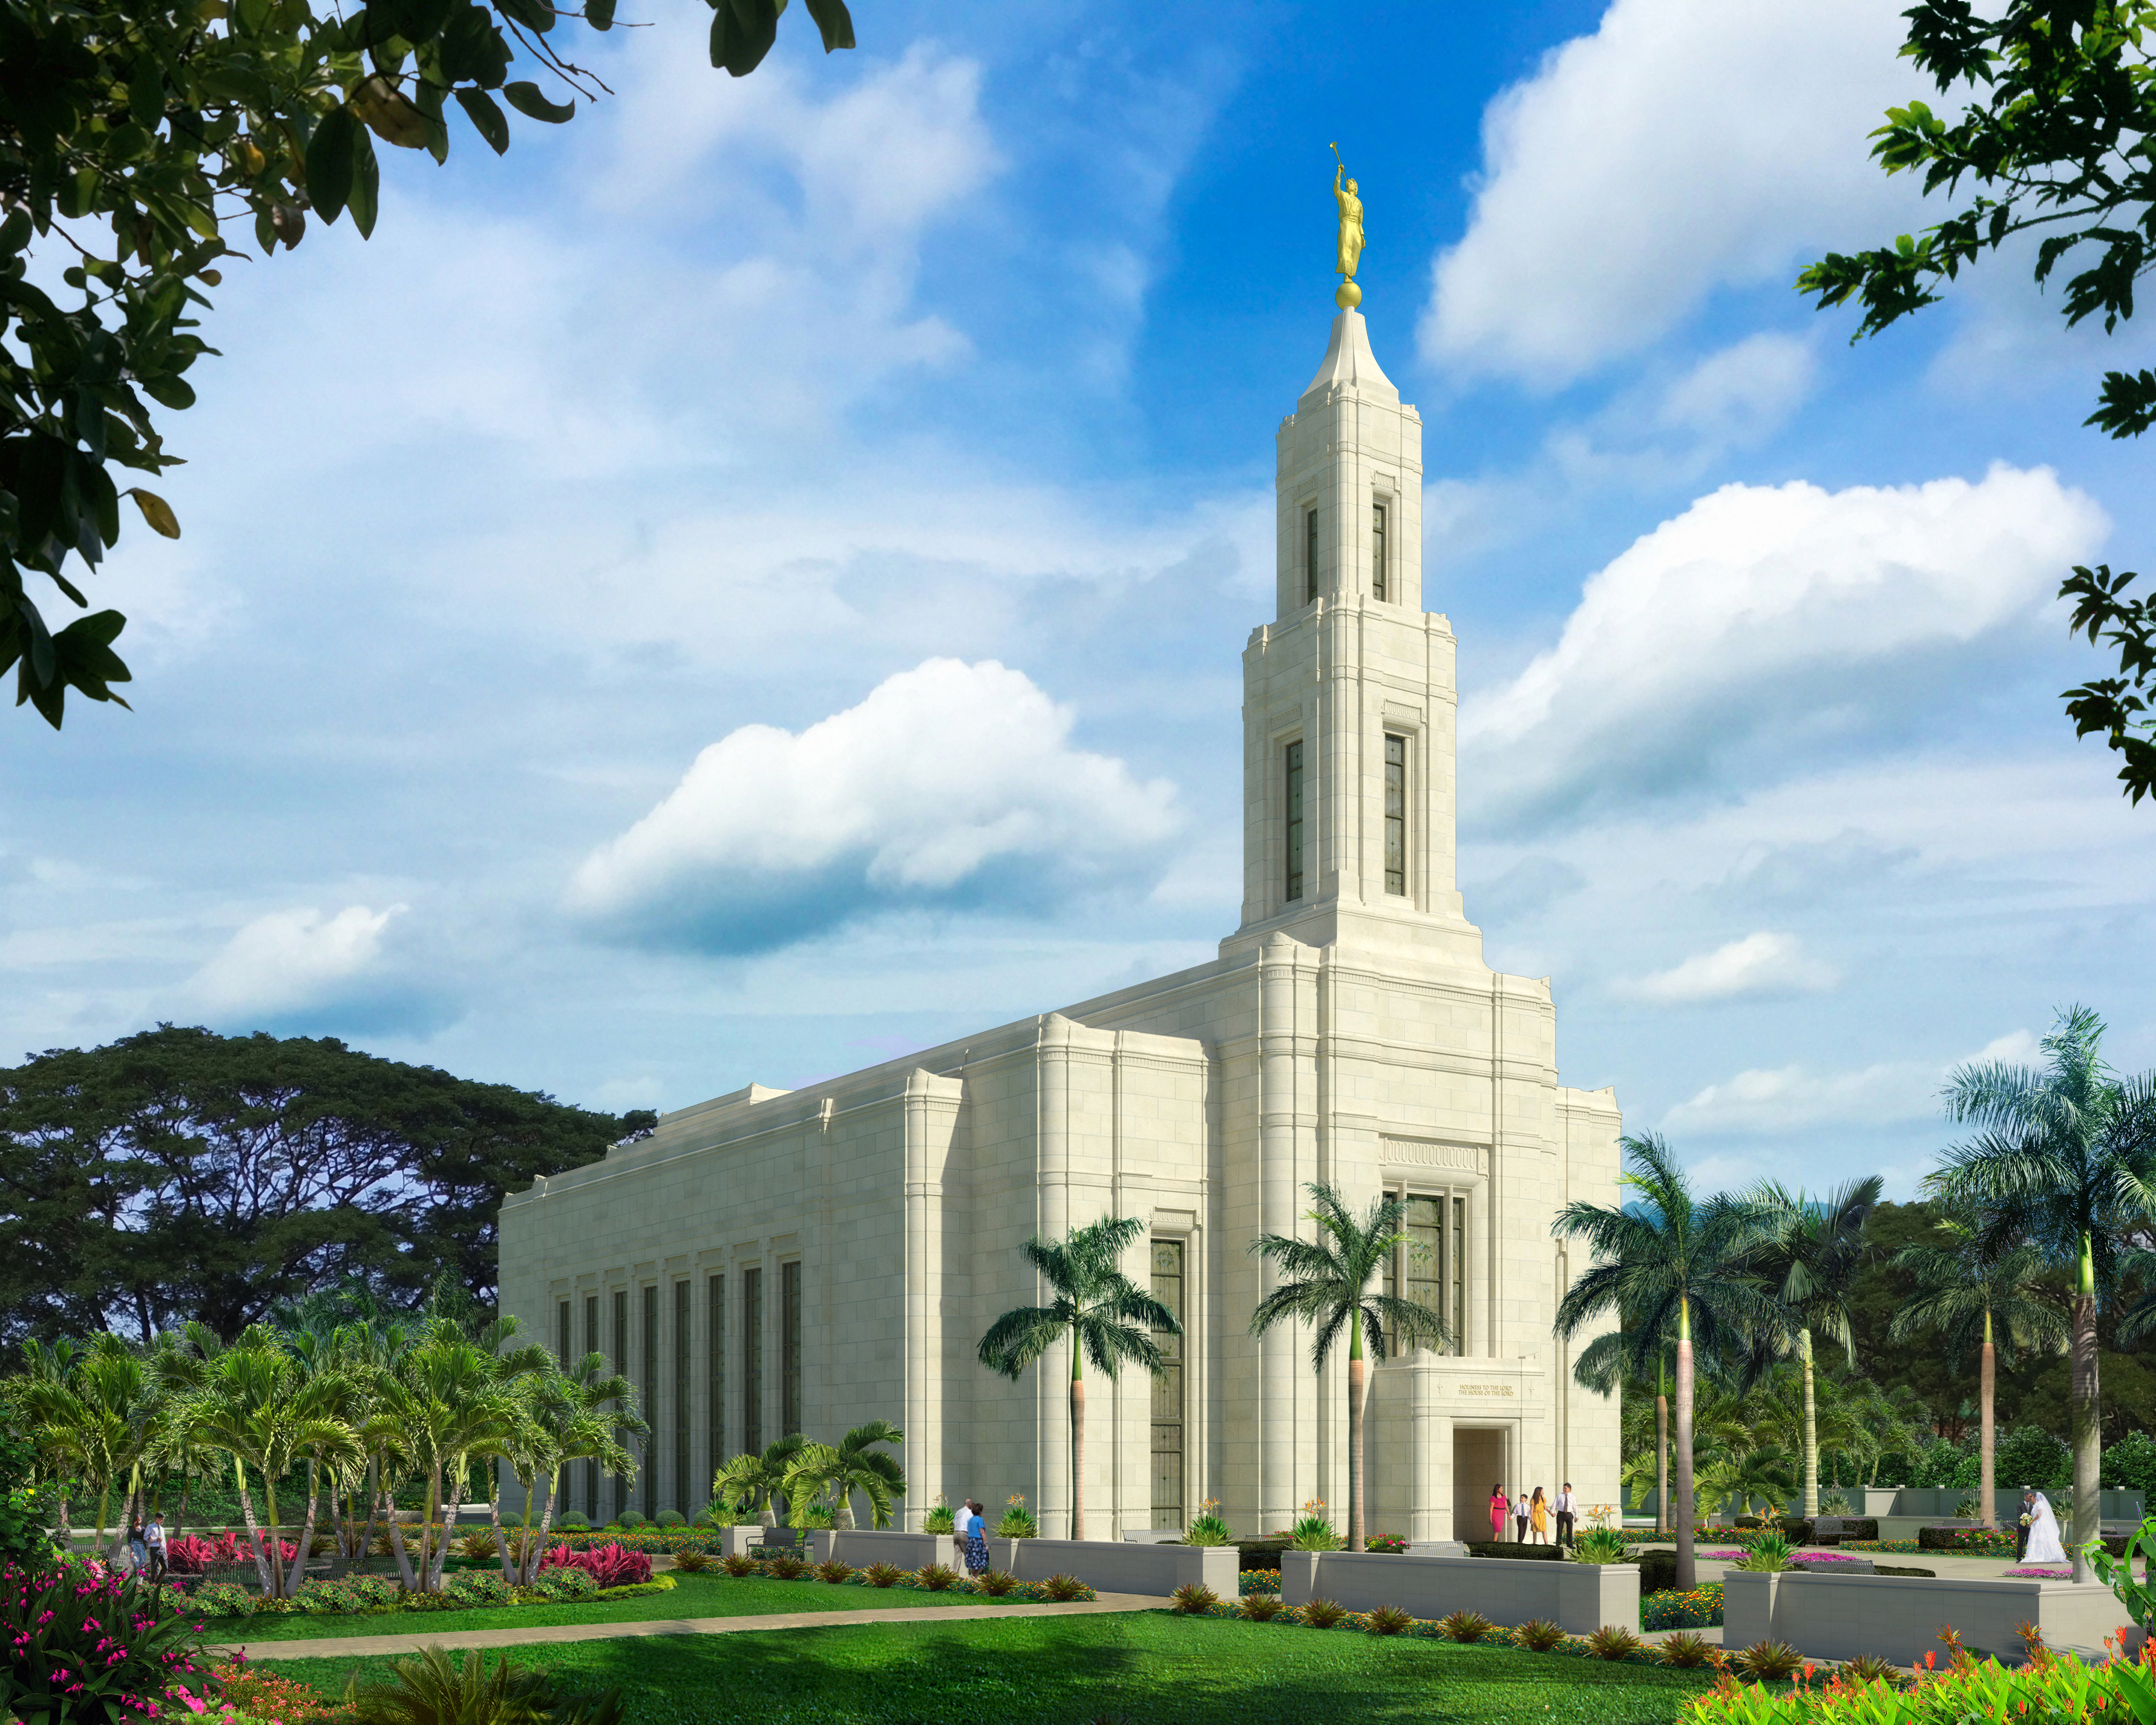 An artist's rendering of the Urdaneta Philippines Temple.